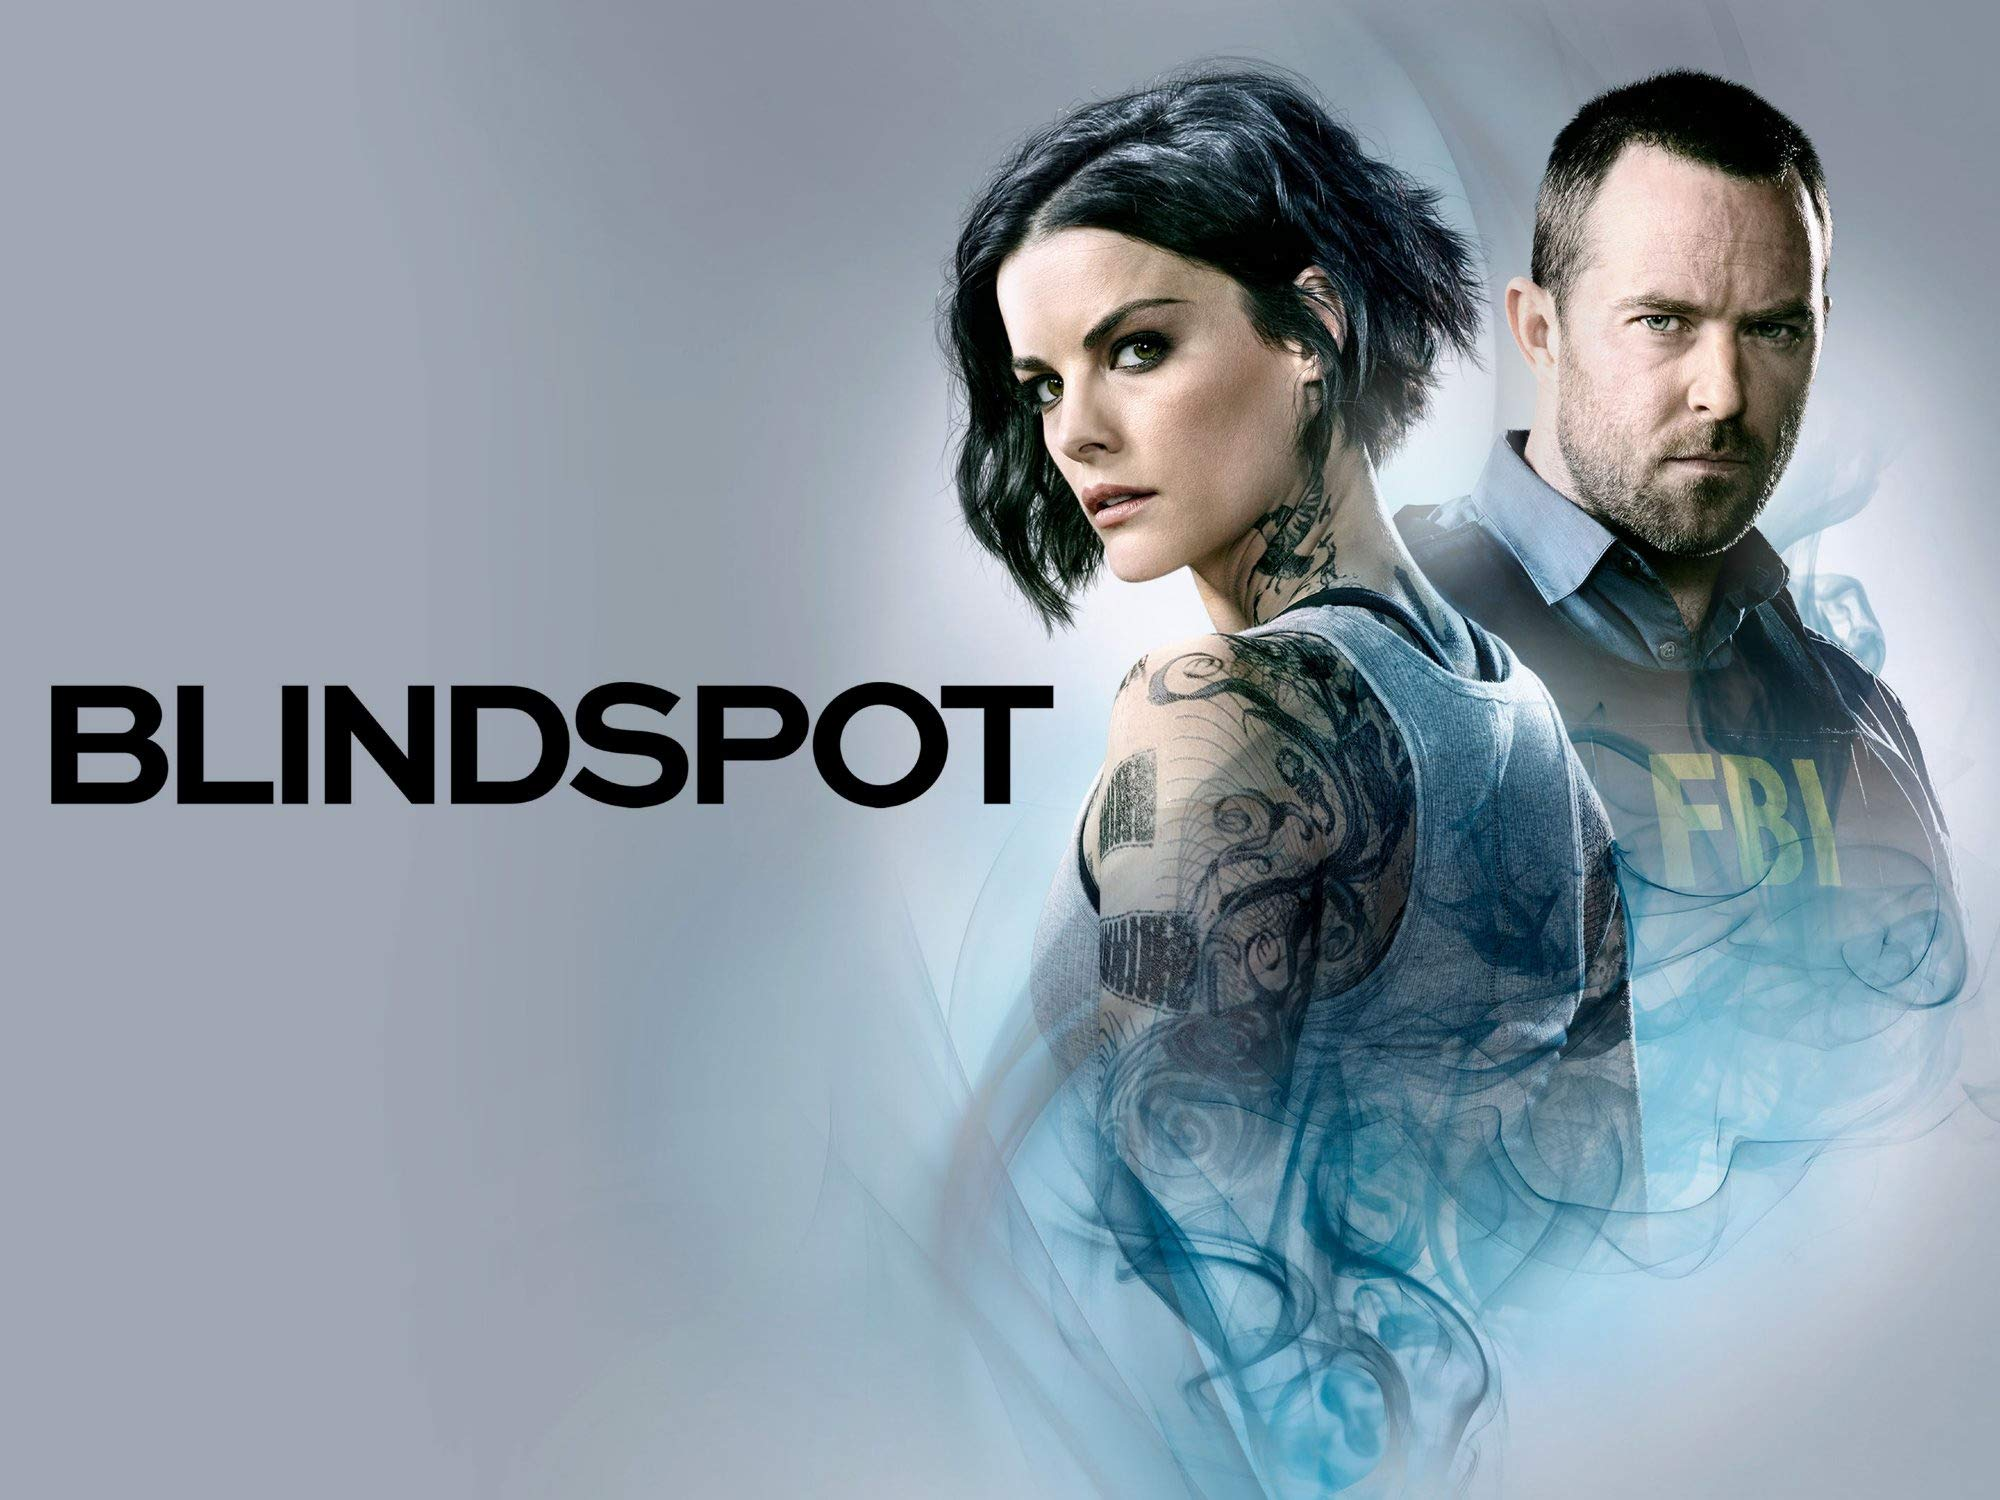 a woman and man against a light grey background and teal smoke she has tattoos and he is wearing an FBI vest blindspot